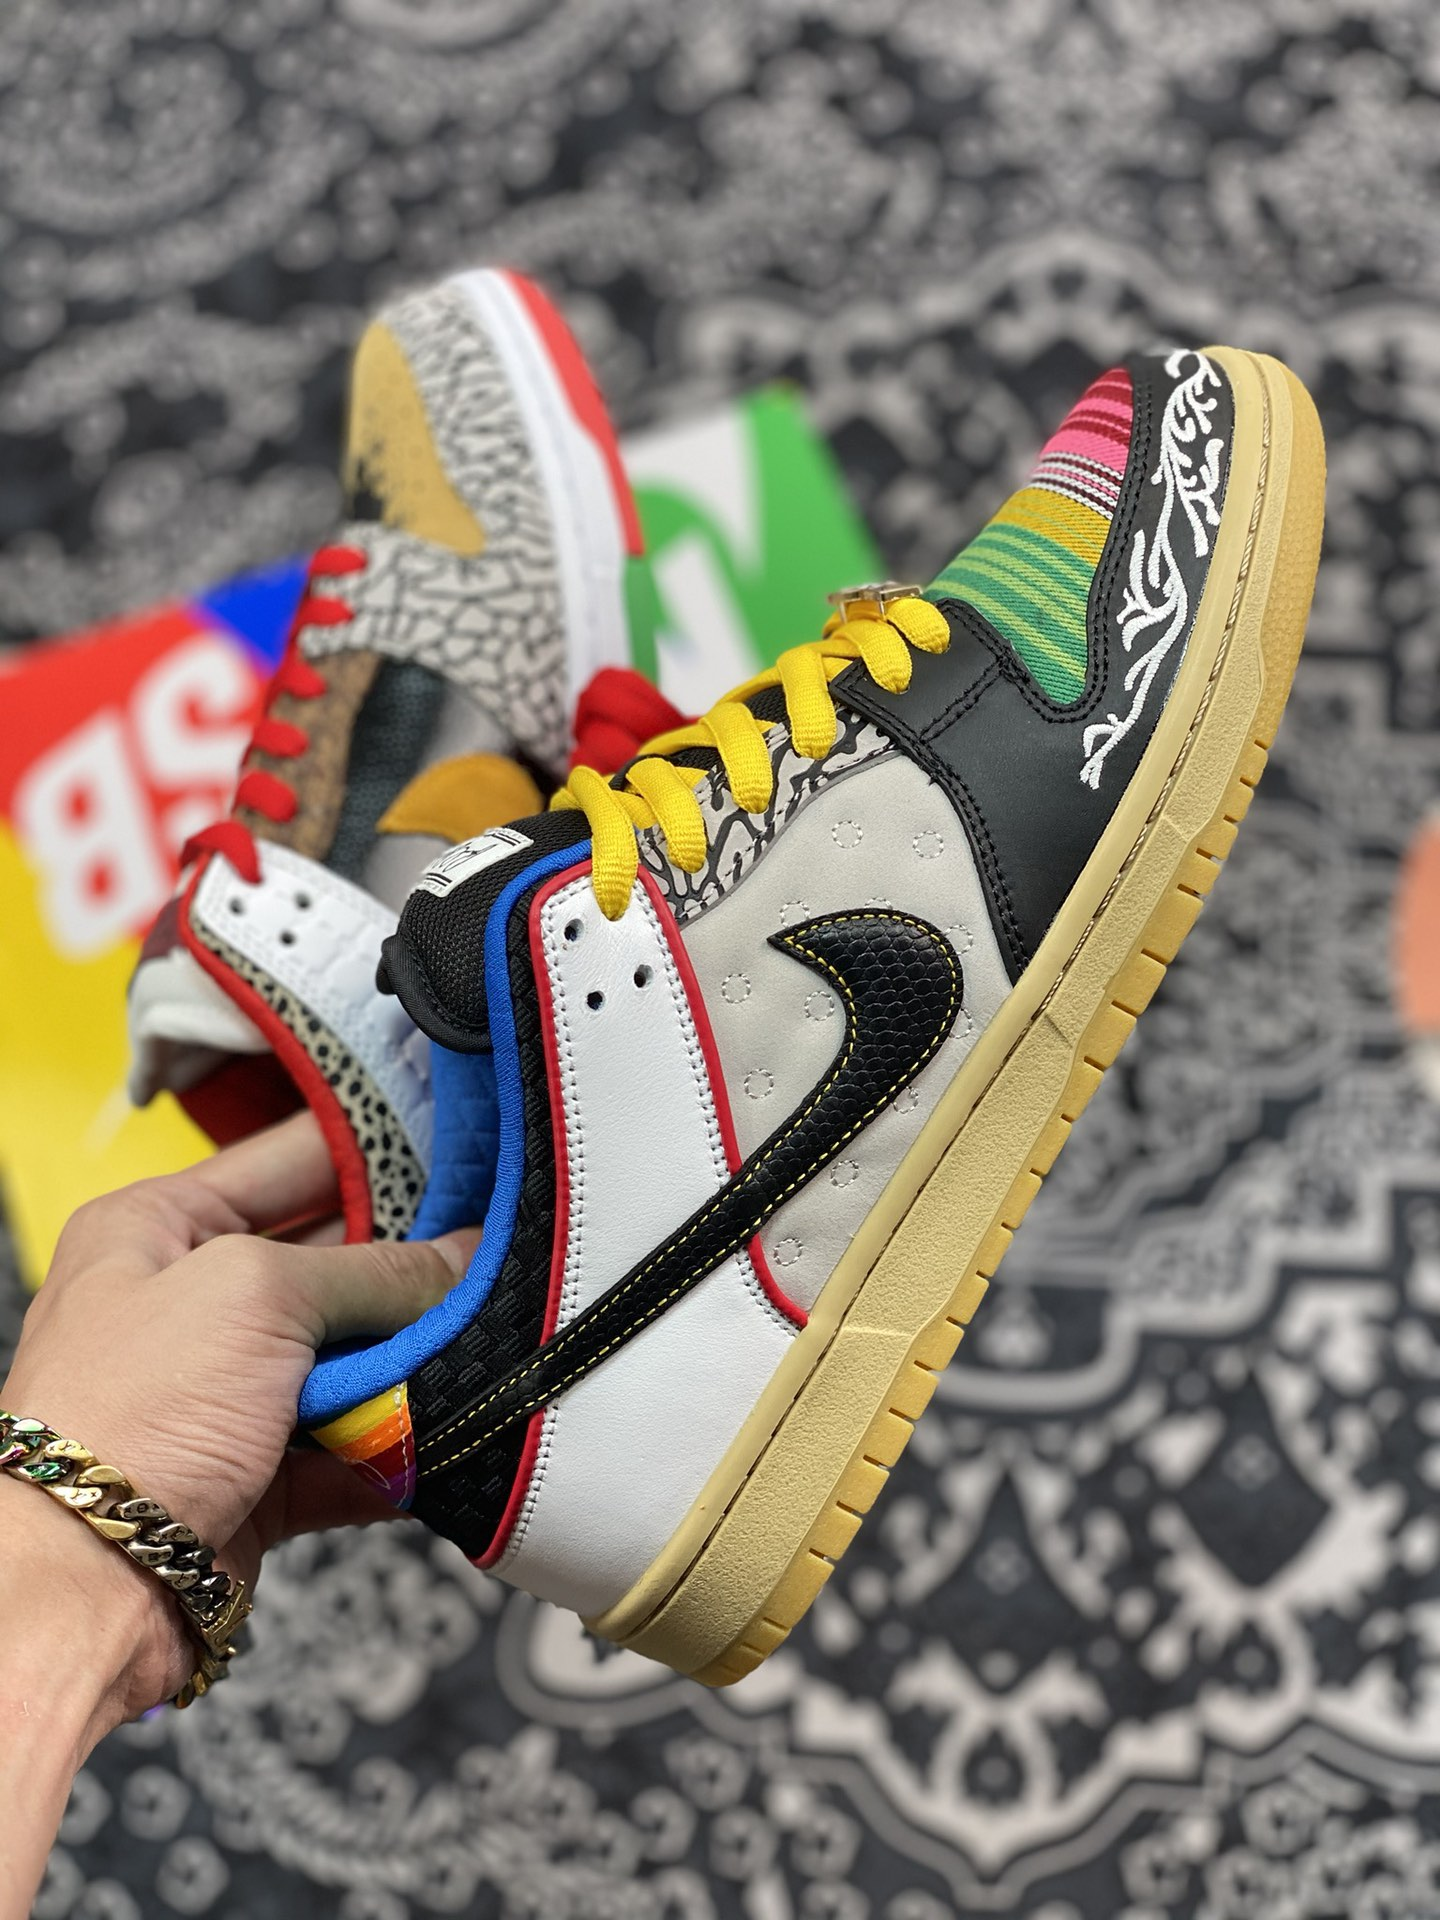 Funky Dunk Low SB 'What The Paul' from Nike is What You Should Buy